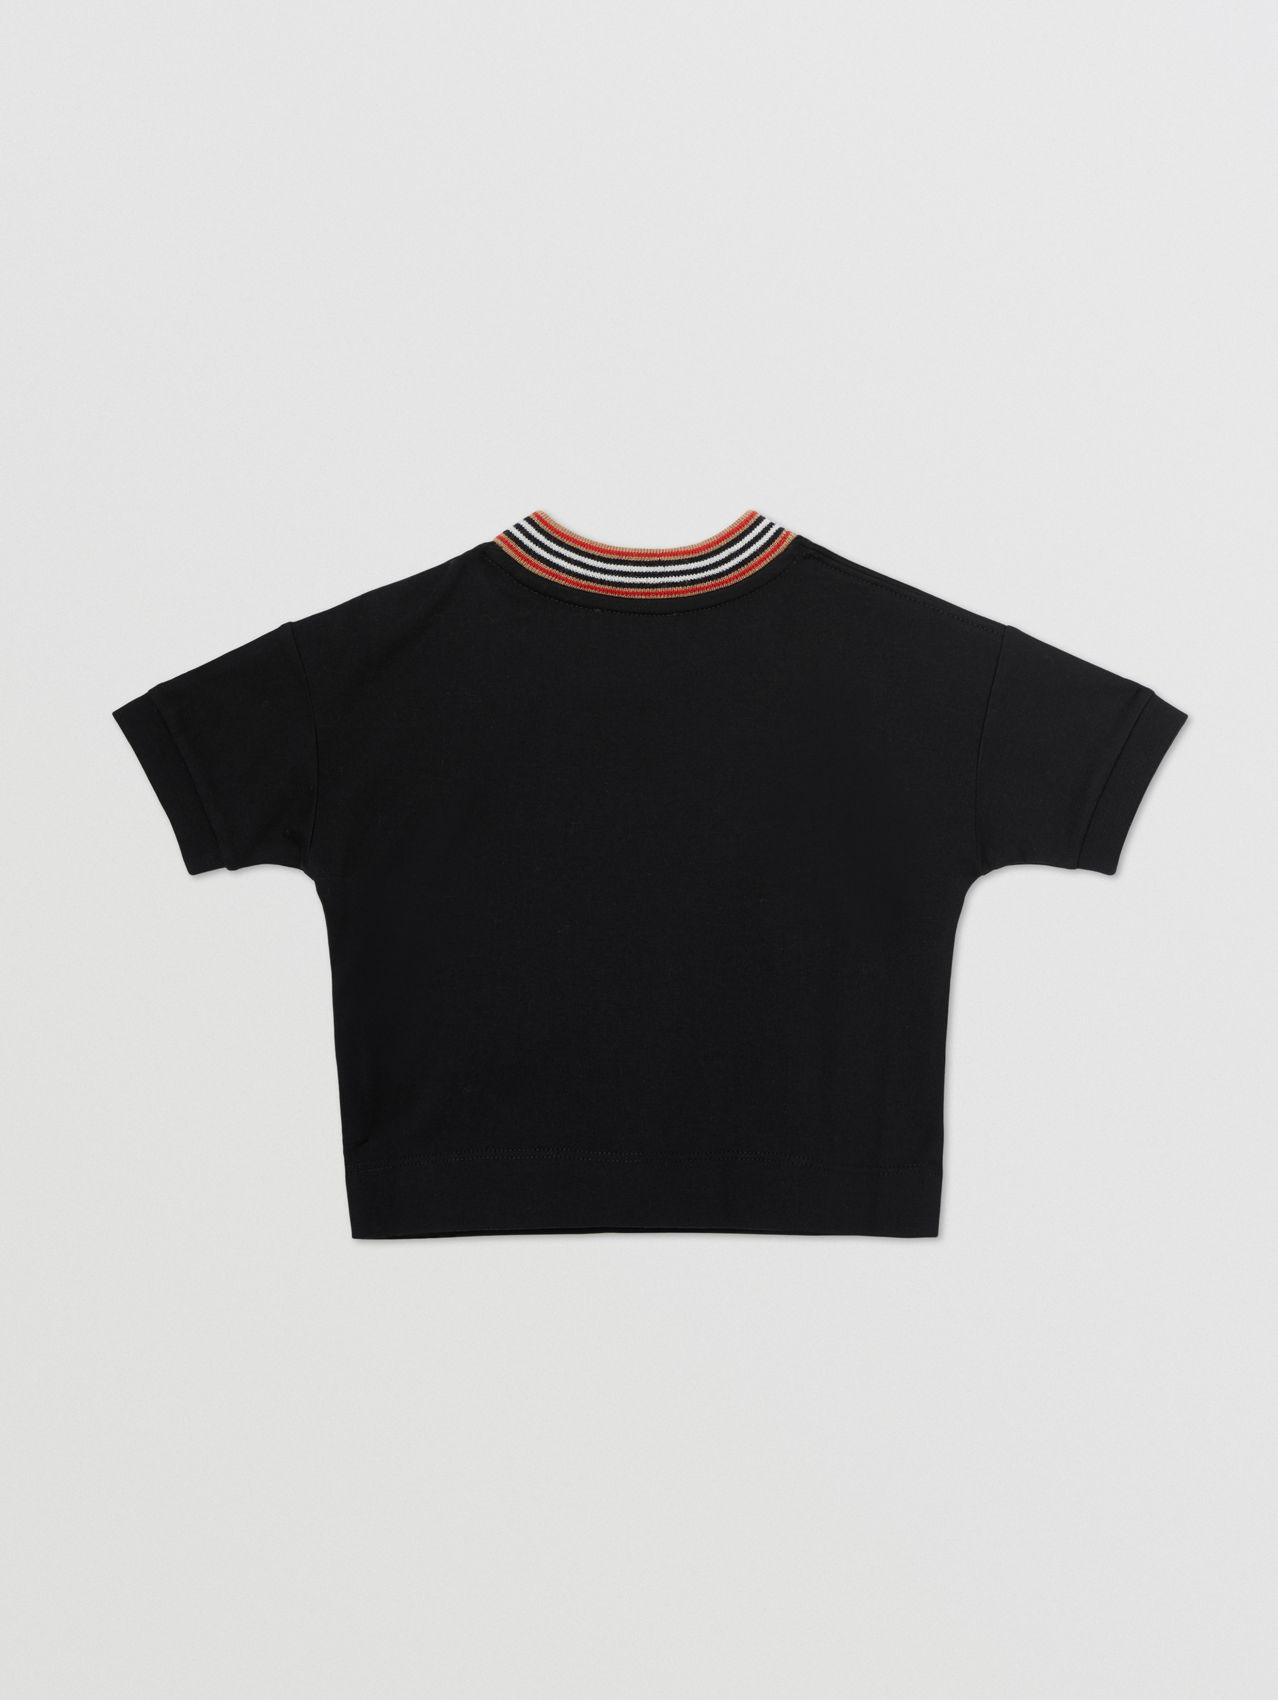 Cake Print Cotton T-shirt in Black